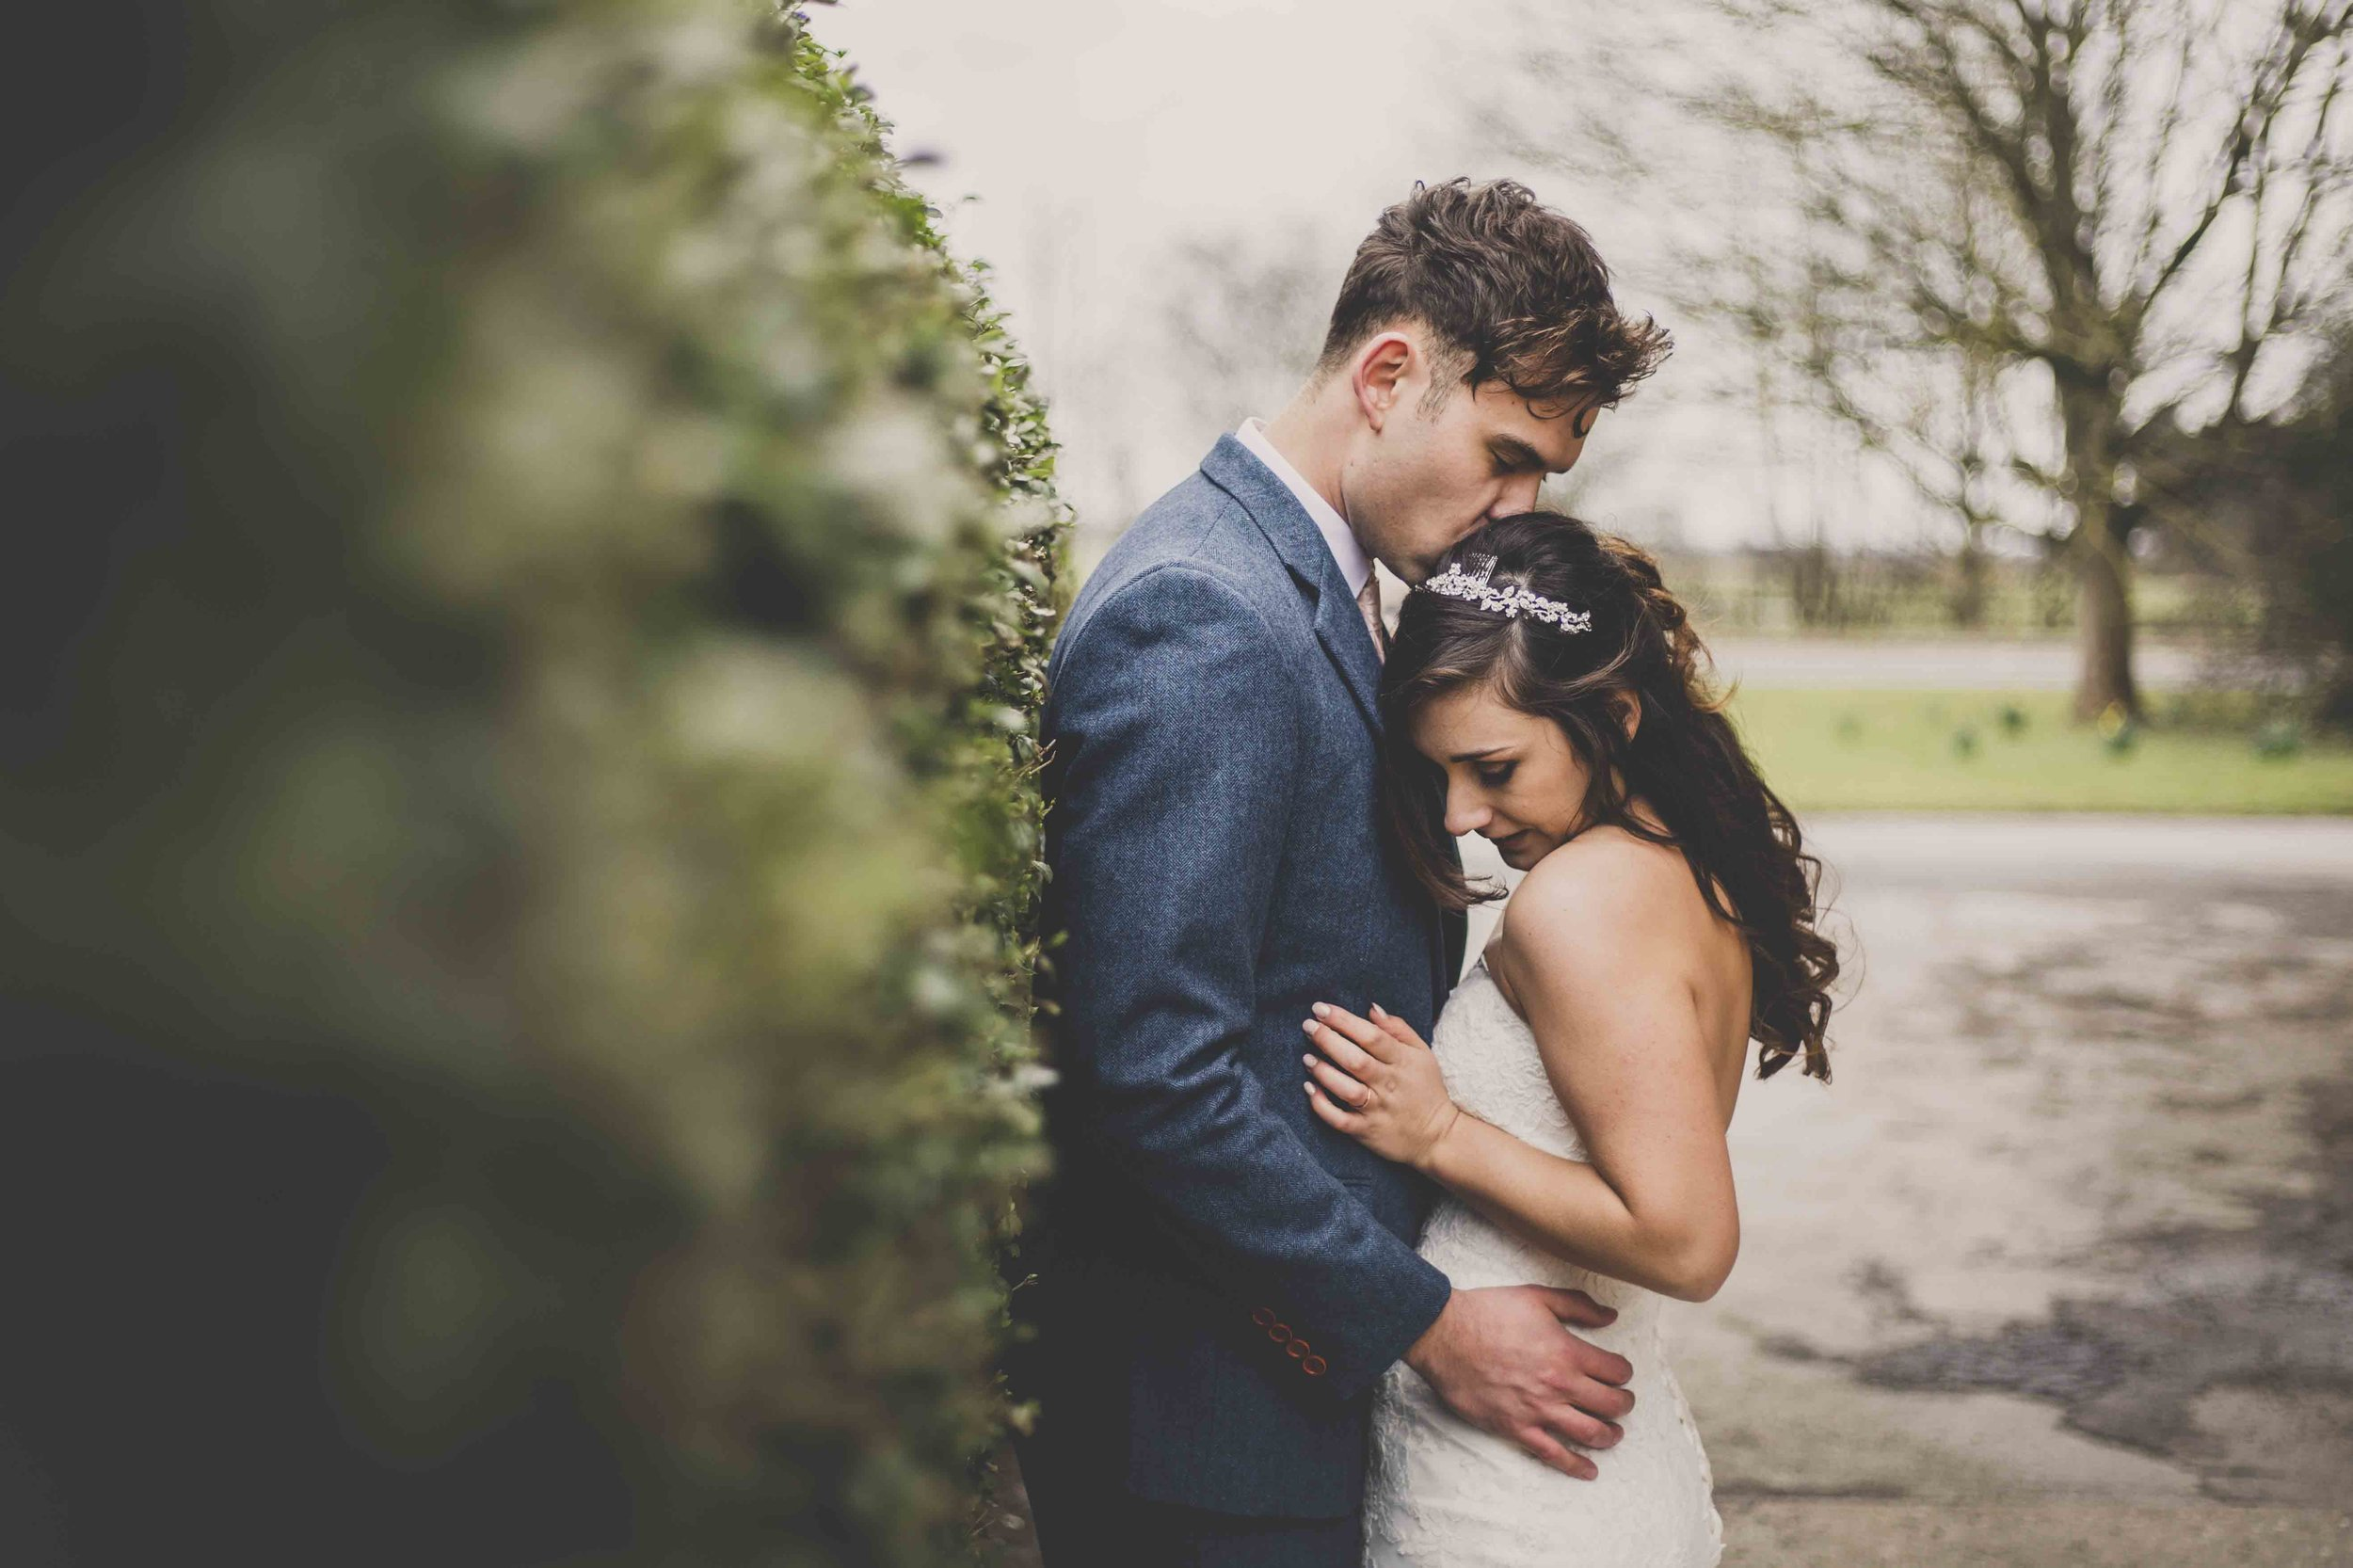 wedding photographer tickton grange.jpg